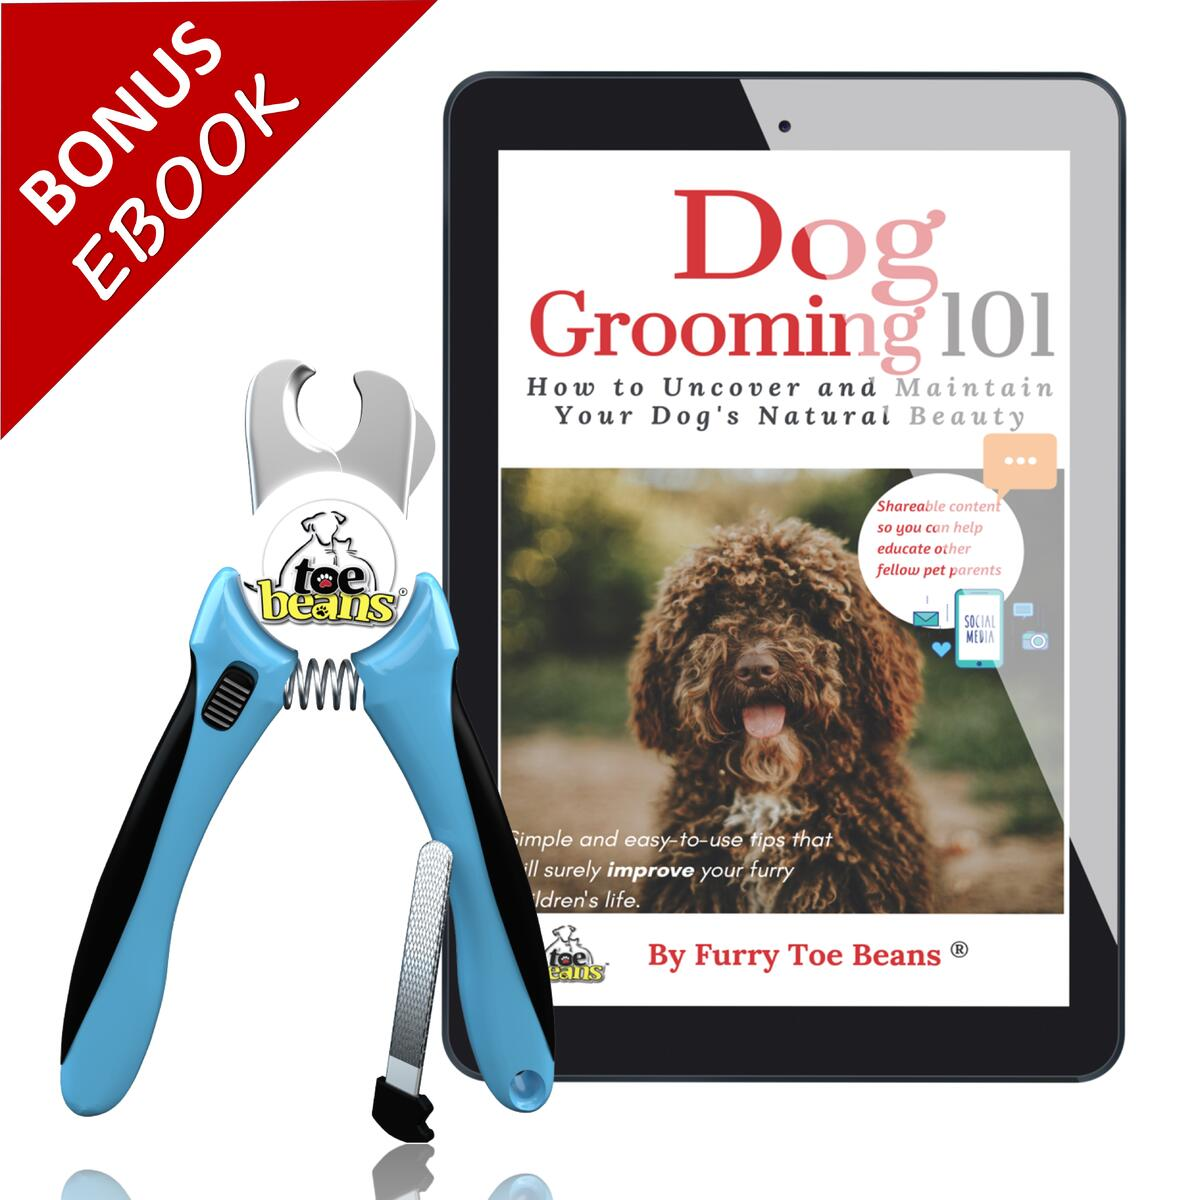 Dog Nail Clippers | Plastic-Free Packaging | FREE SHiPPiNG - No order Minimums! ! | FREE Dog Grooming Ebook | FREE Storage Cottong Bag